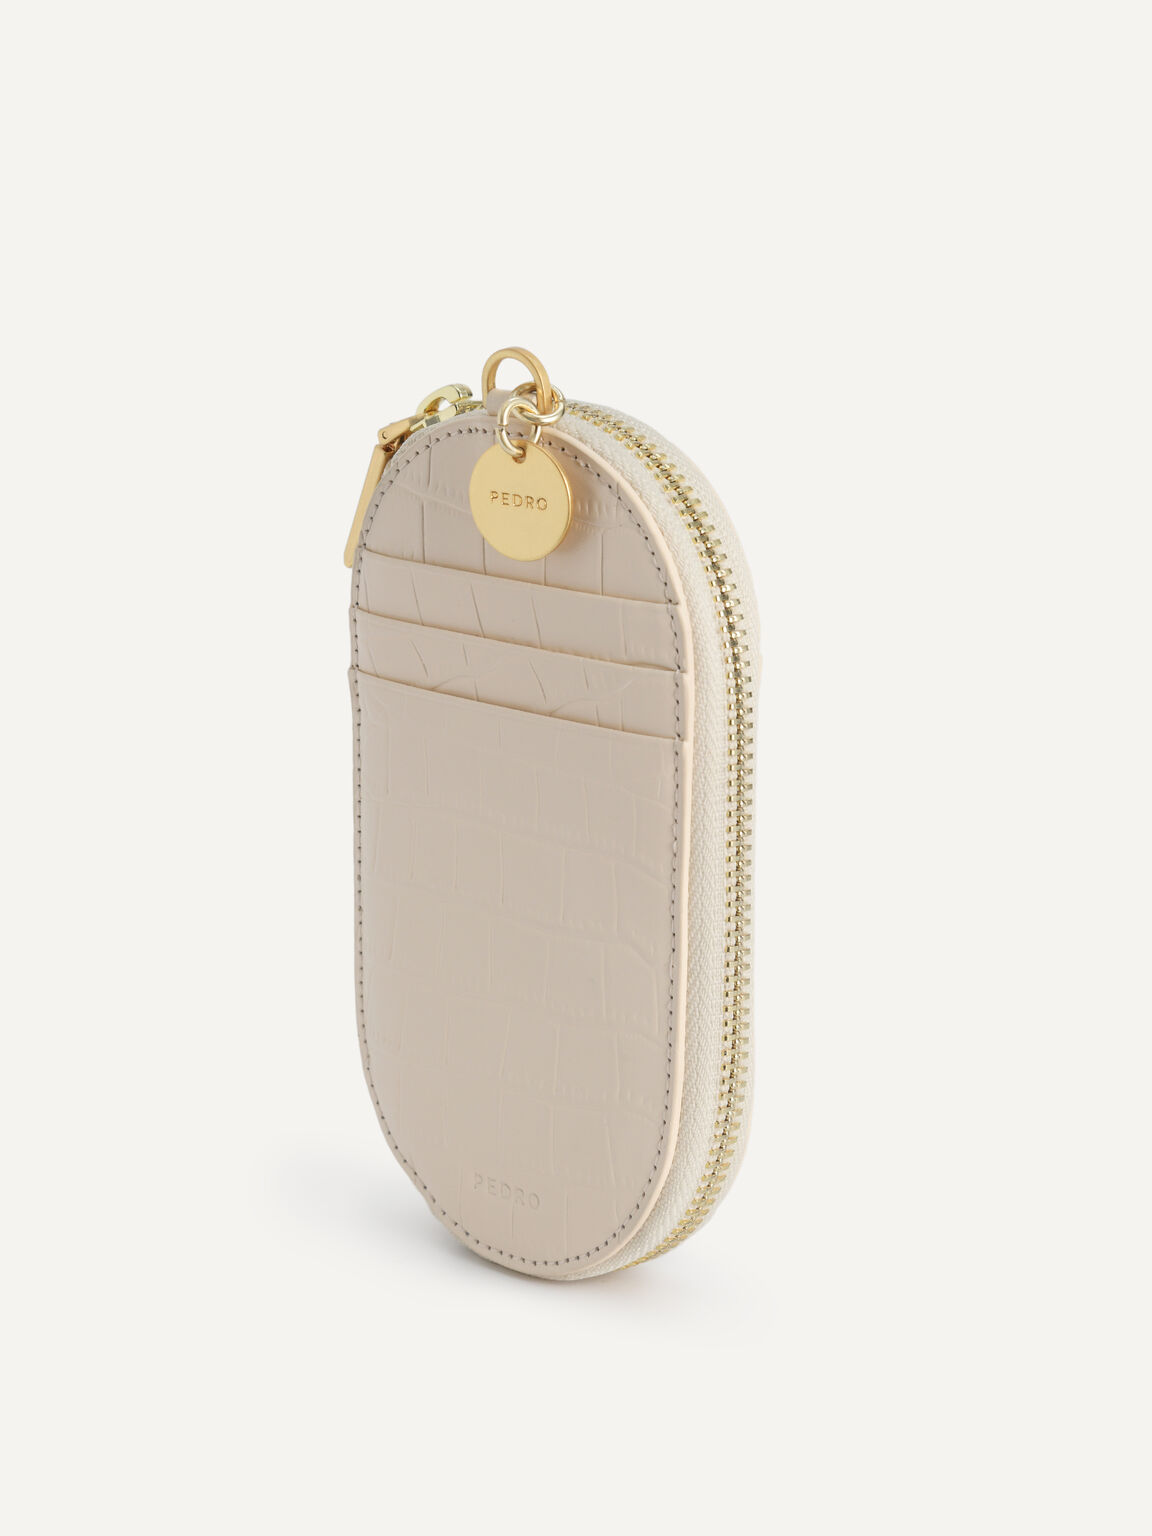 Textured Leather Pouch, Beige, hi-res